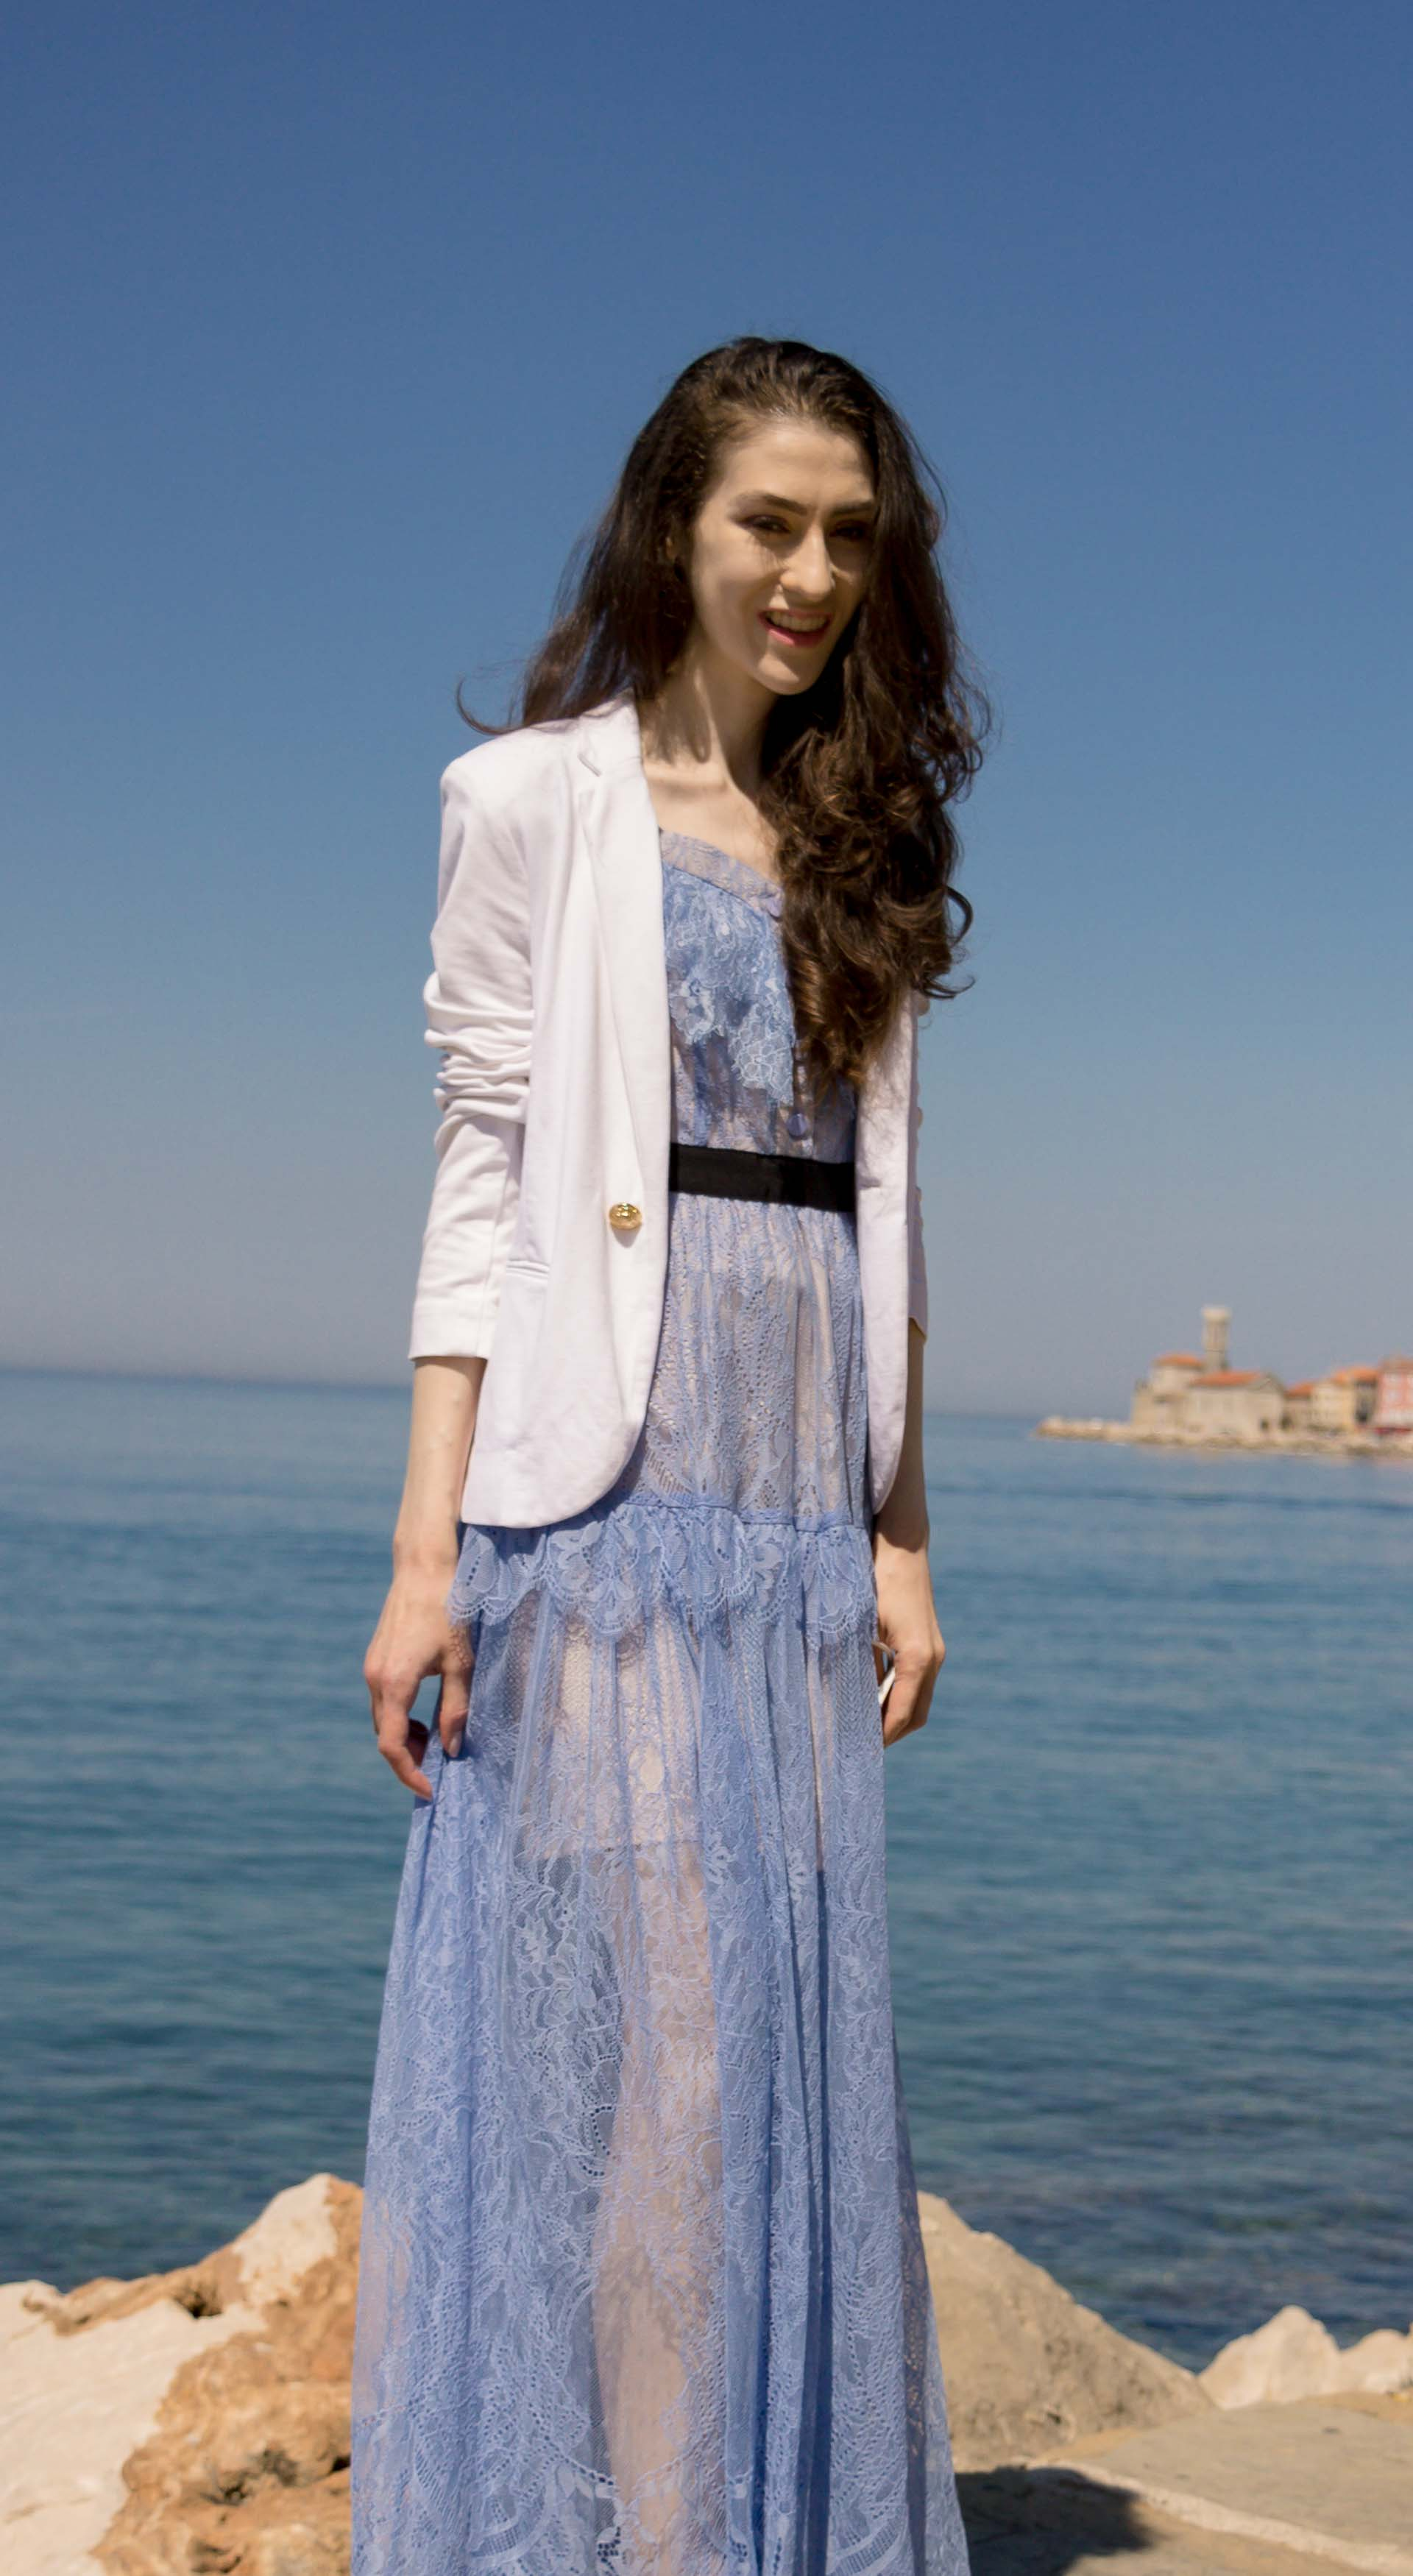 Veronika Lipar Fashion Blogger of Brunette from Wall Street wearing Self-Portrait blue lace midi dress, white single button blazer, white shoulder bag, for a wedding by the sea